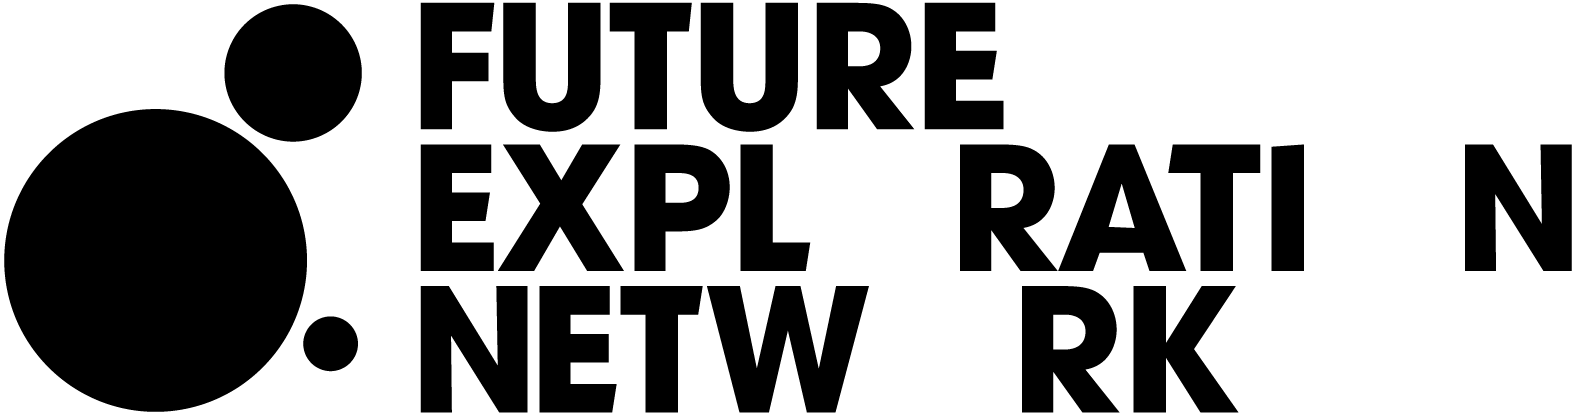 Future Exploration Network